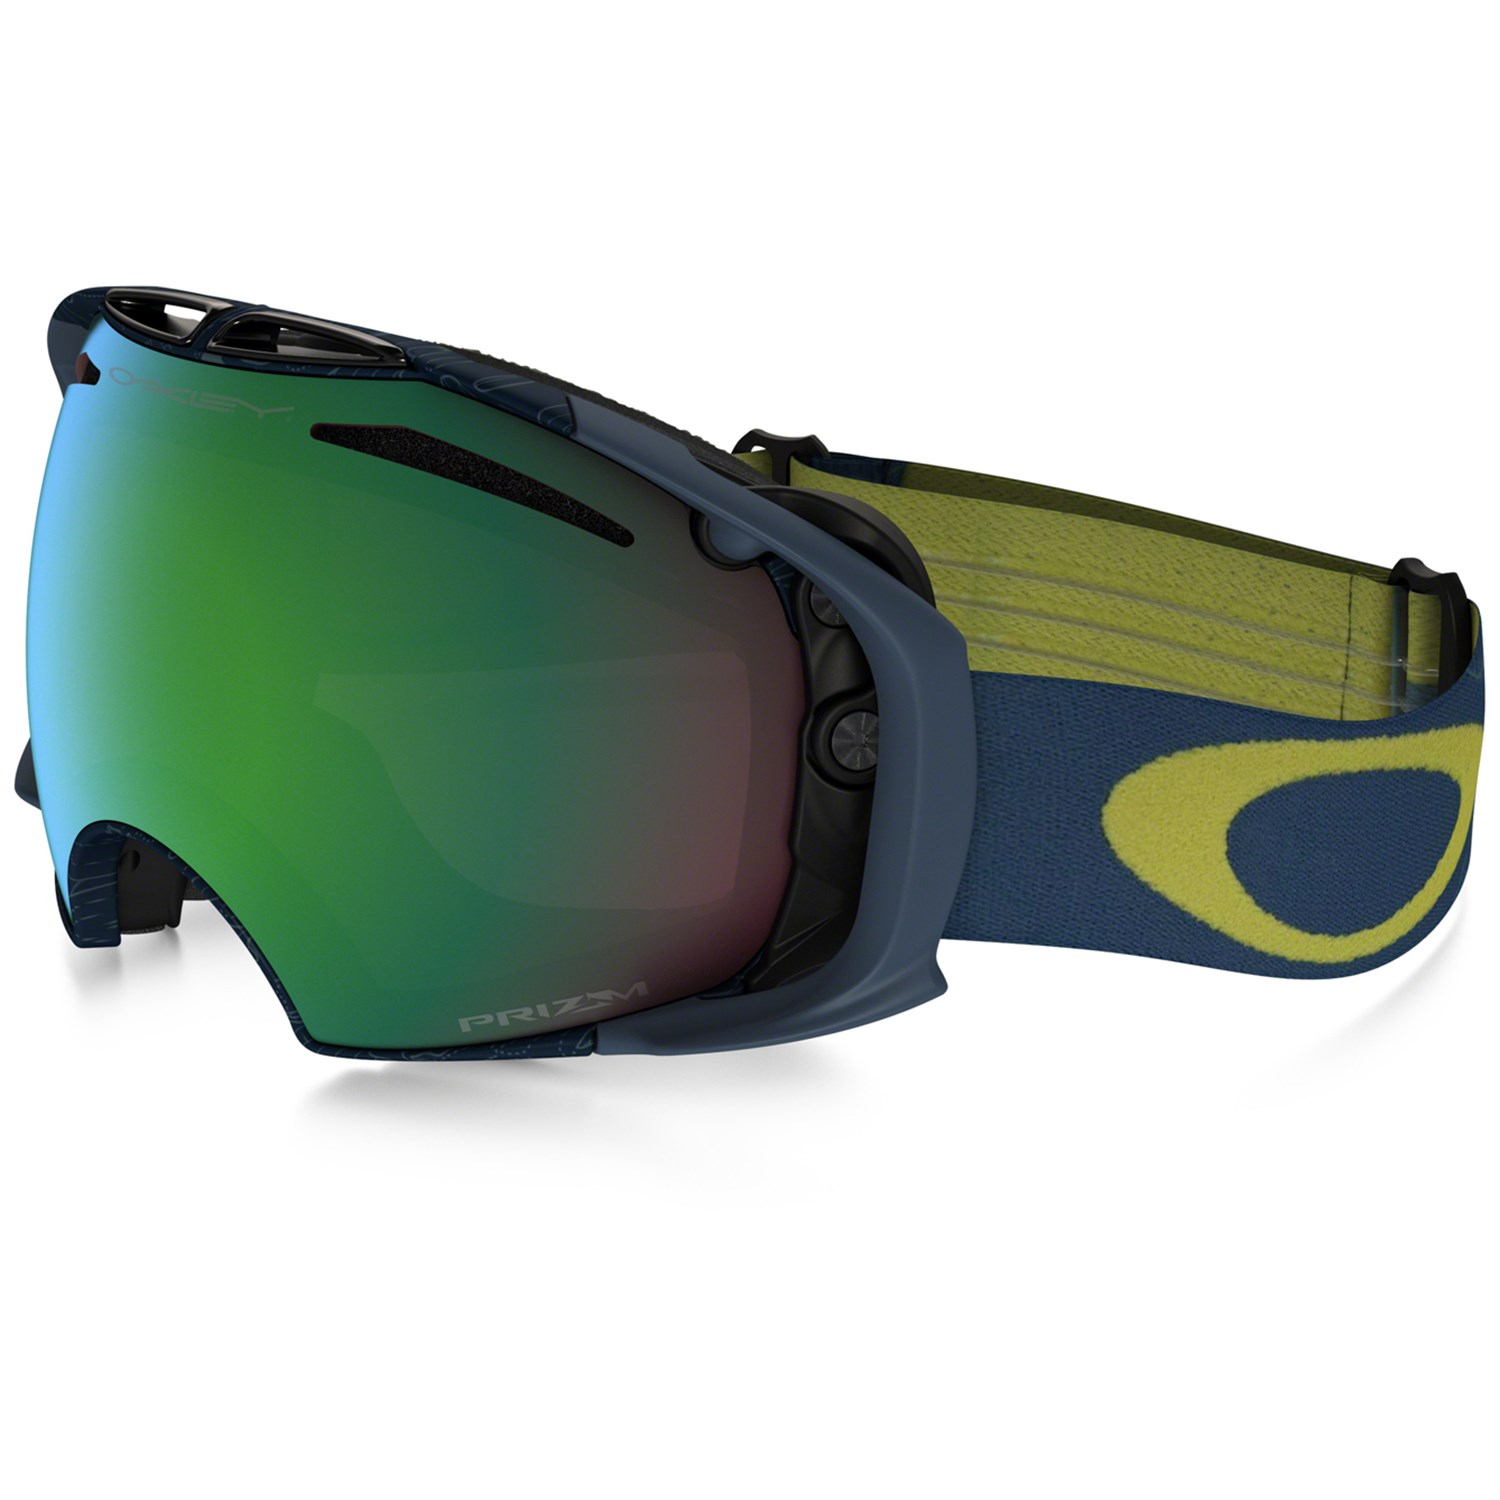 Oakley Ski Goggles Interchangeable Lenses